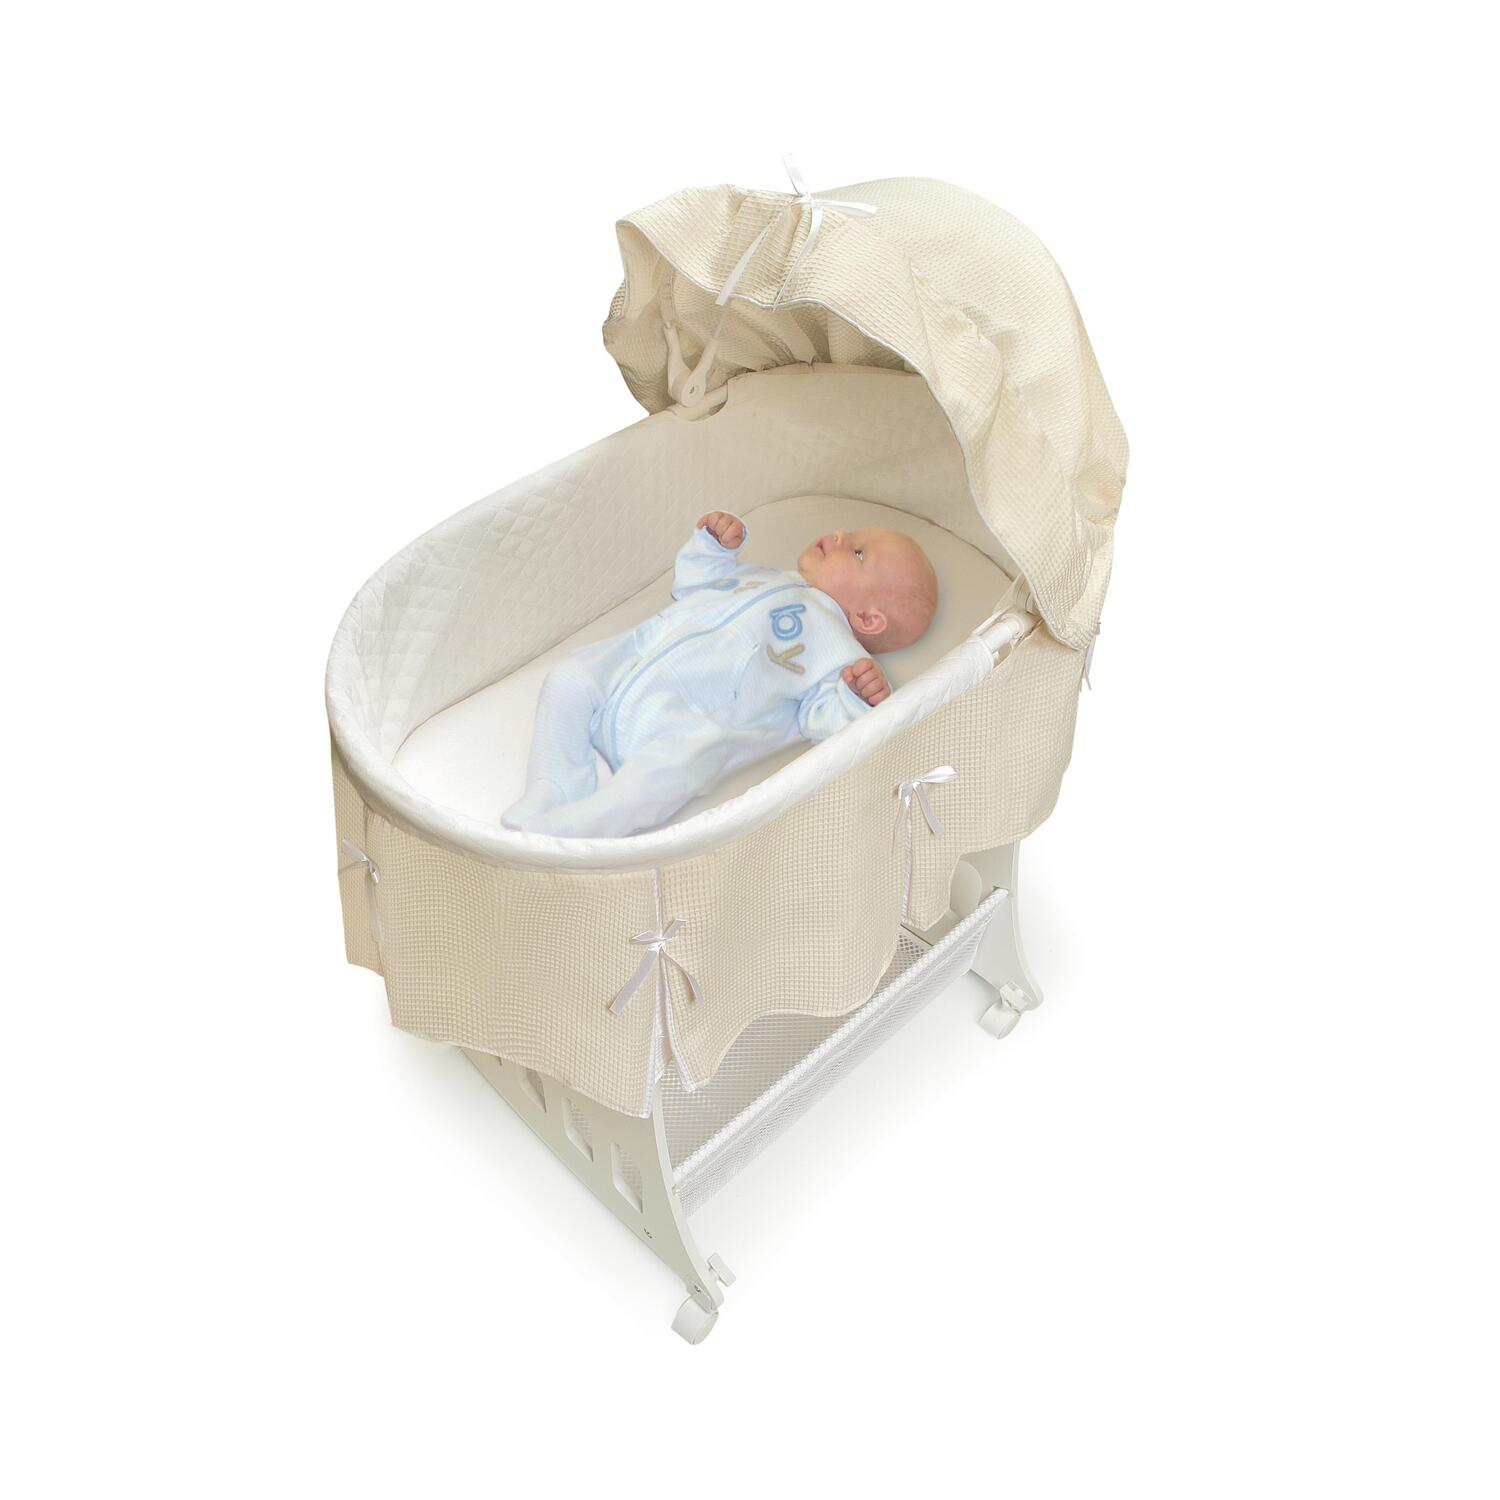 Badger basket portable bassinet 39 n cradle with toybox base Portable bassinet